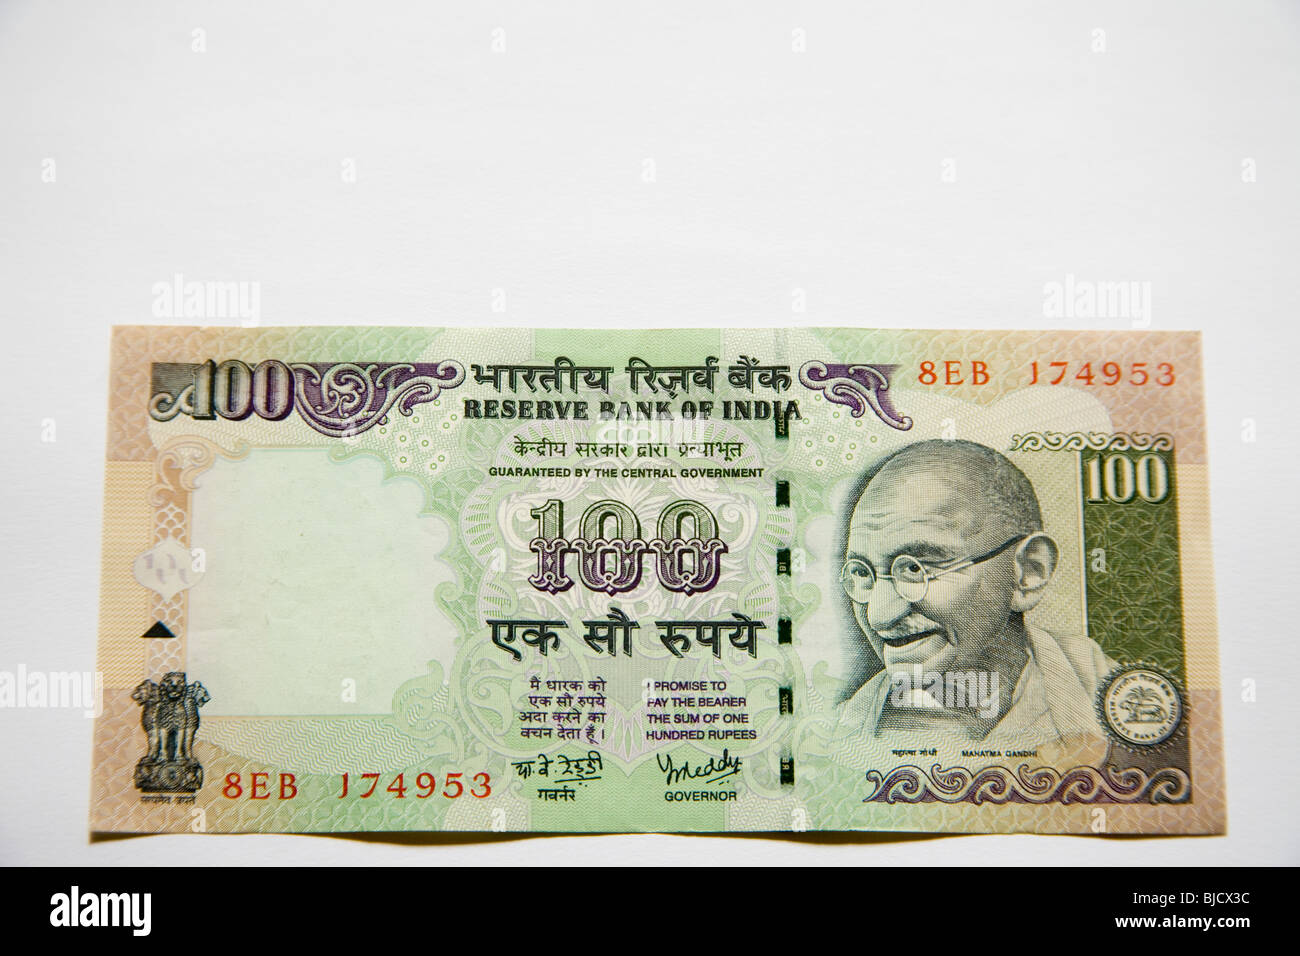 Indian currency one hundred rupee note Reserve Bank Government of India show front side - Stock Image